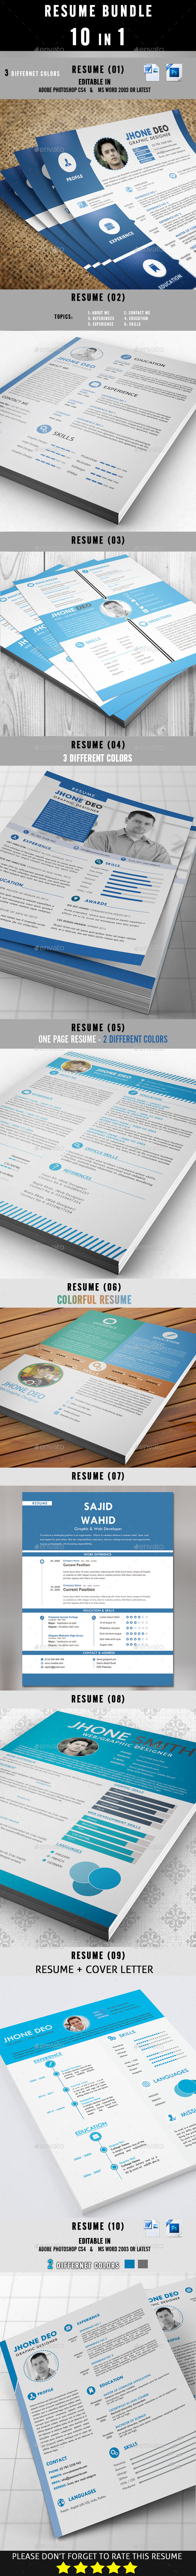 GraphicRiver Resume Bundle 10 in 1 8840295